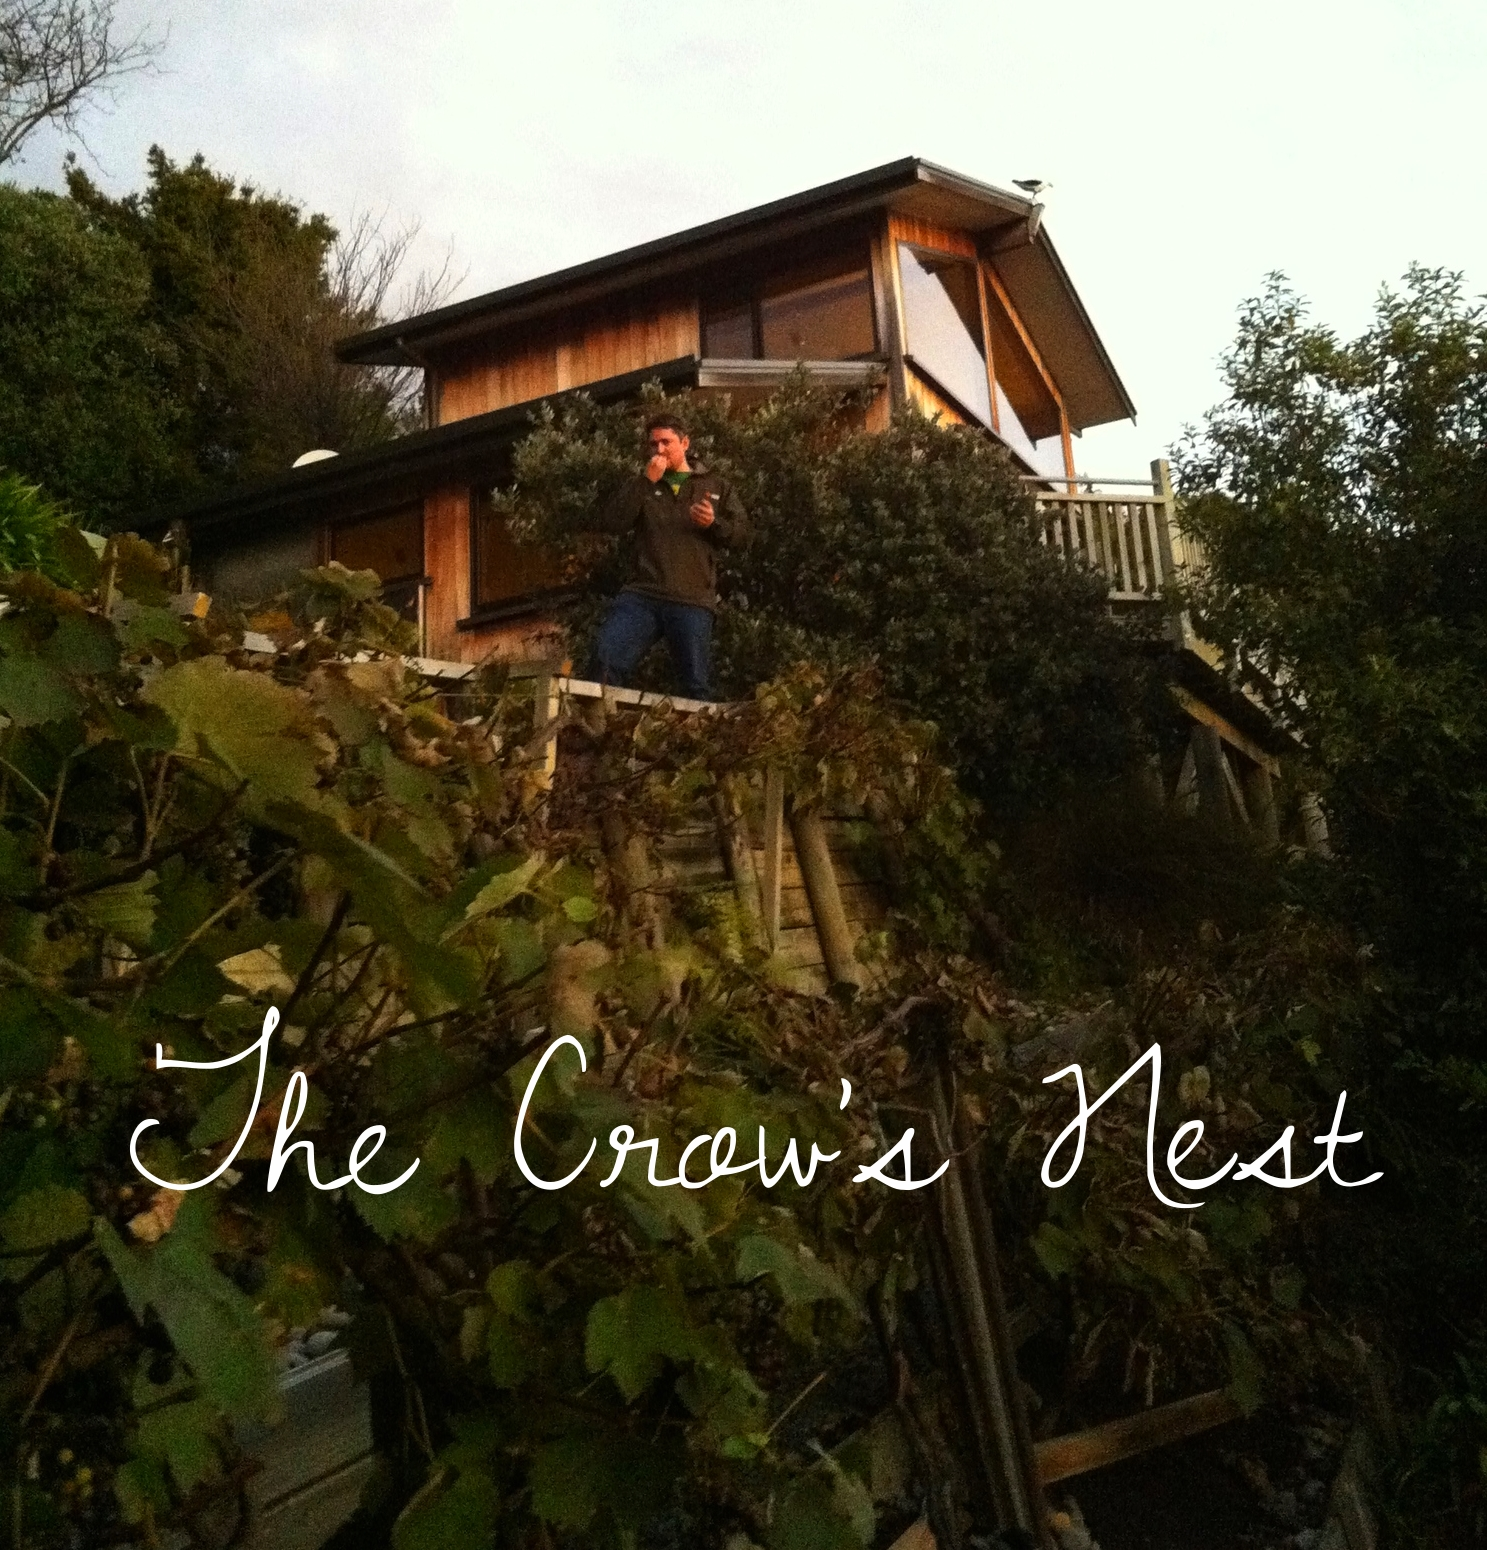 Looking up at the Crow's Nest from the garden.